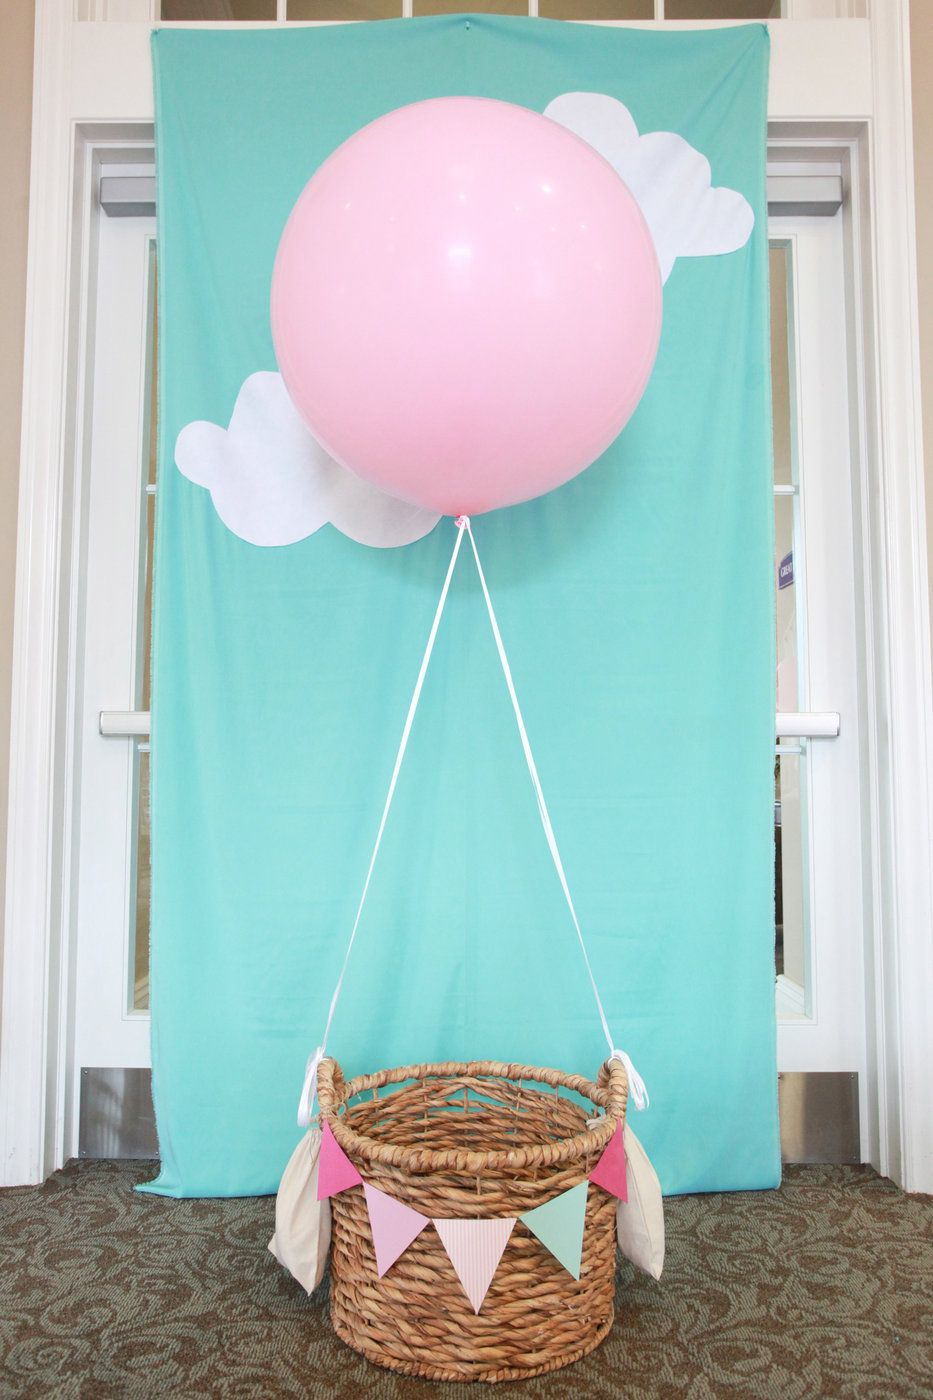 foto hintergrund supers mit ballon f r baby party diy balloon photo booth for kids. Black Bedroom Furniture Sets. Home Design Ideas